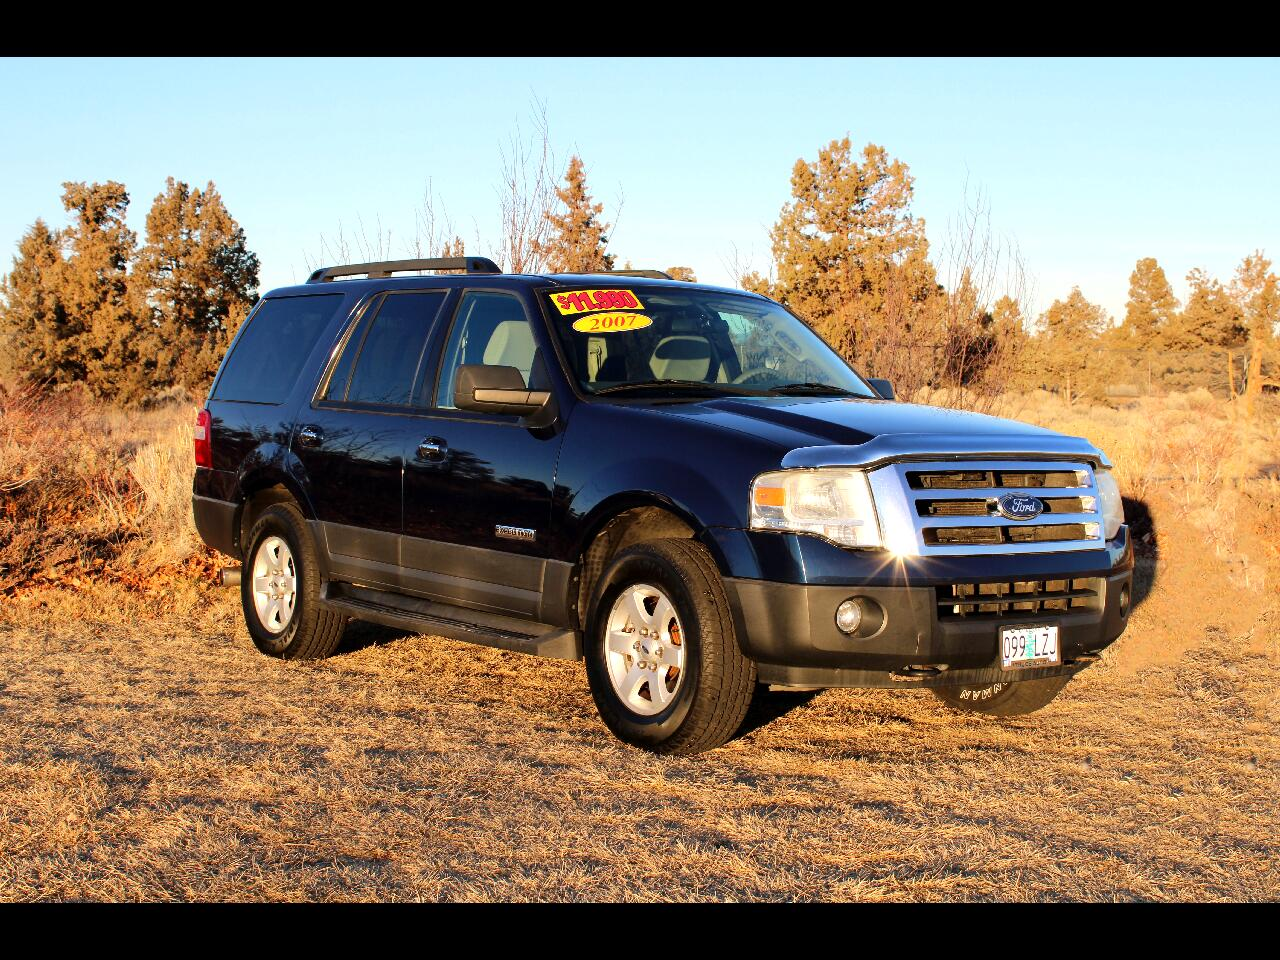 Ford Expedition 4WD 4dr XLT 2007